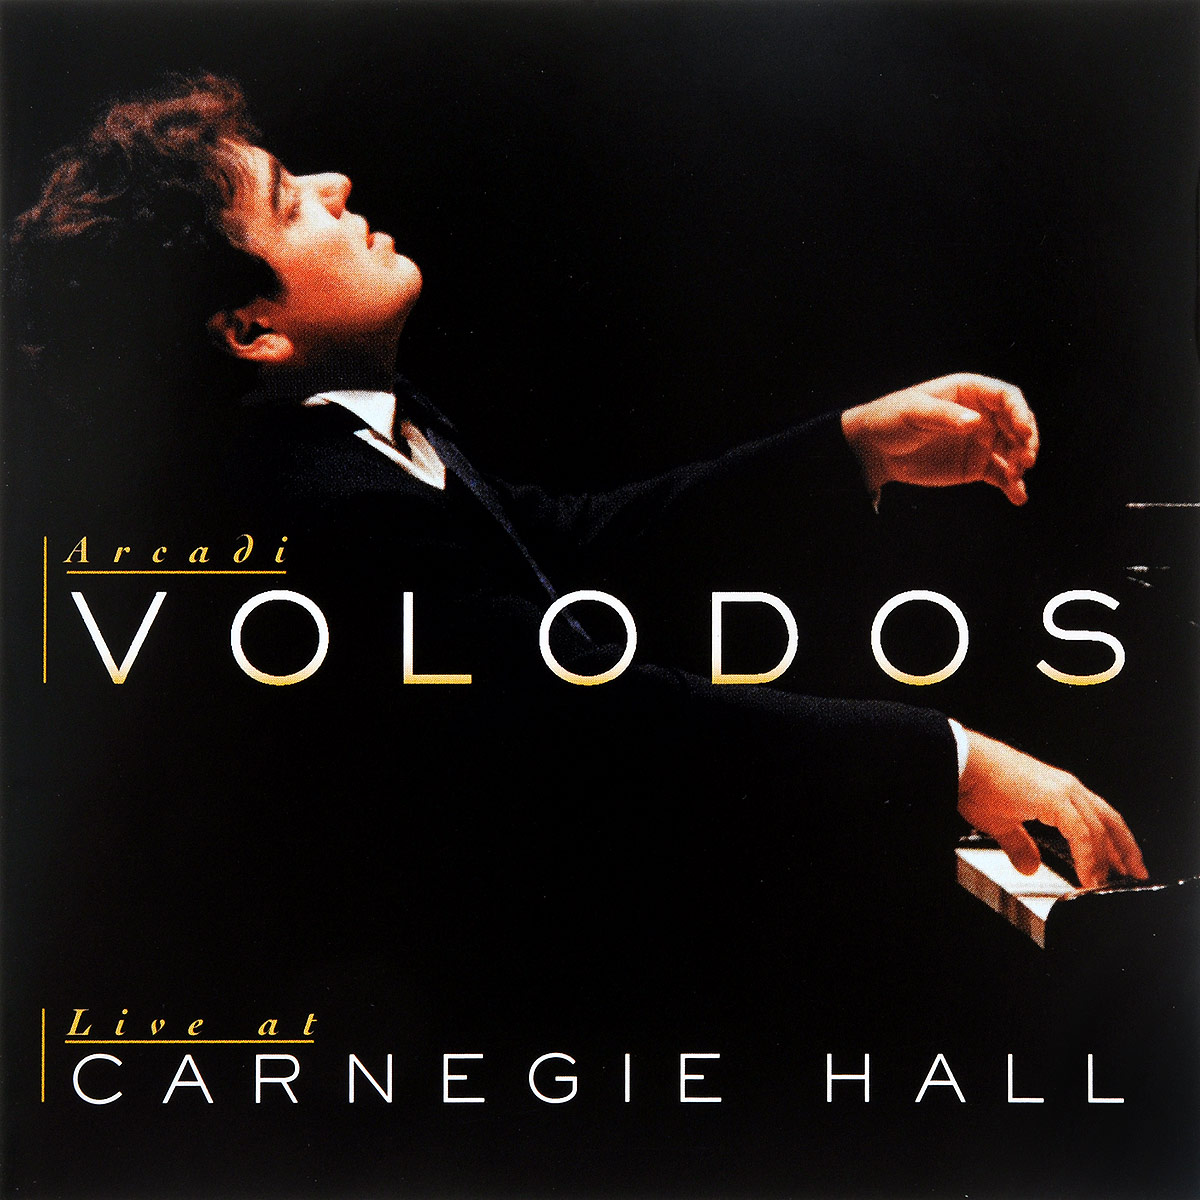 Аркади Володос Arcadi Volodos. Live At Carnegie Hall райан адамс ryan adams ten songs from live at carnegie hall lp